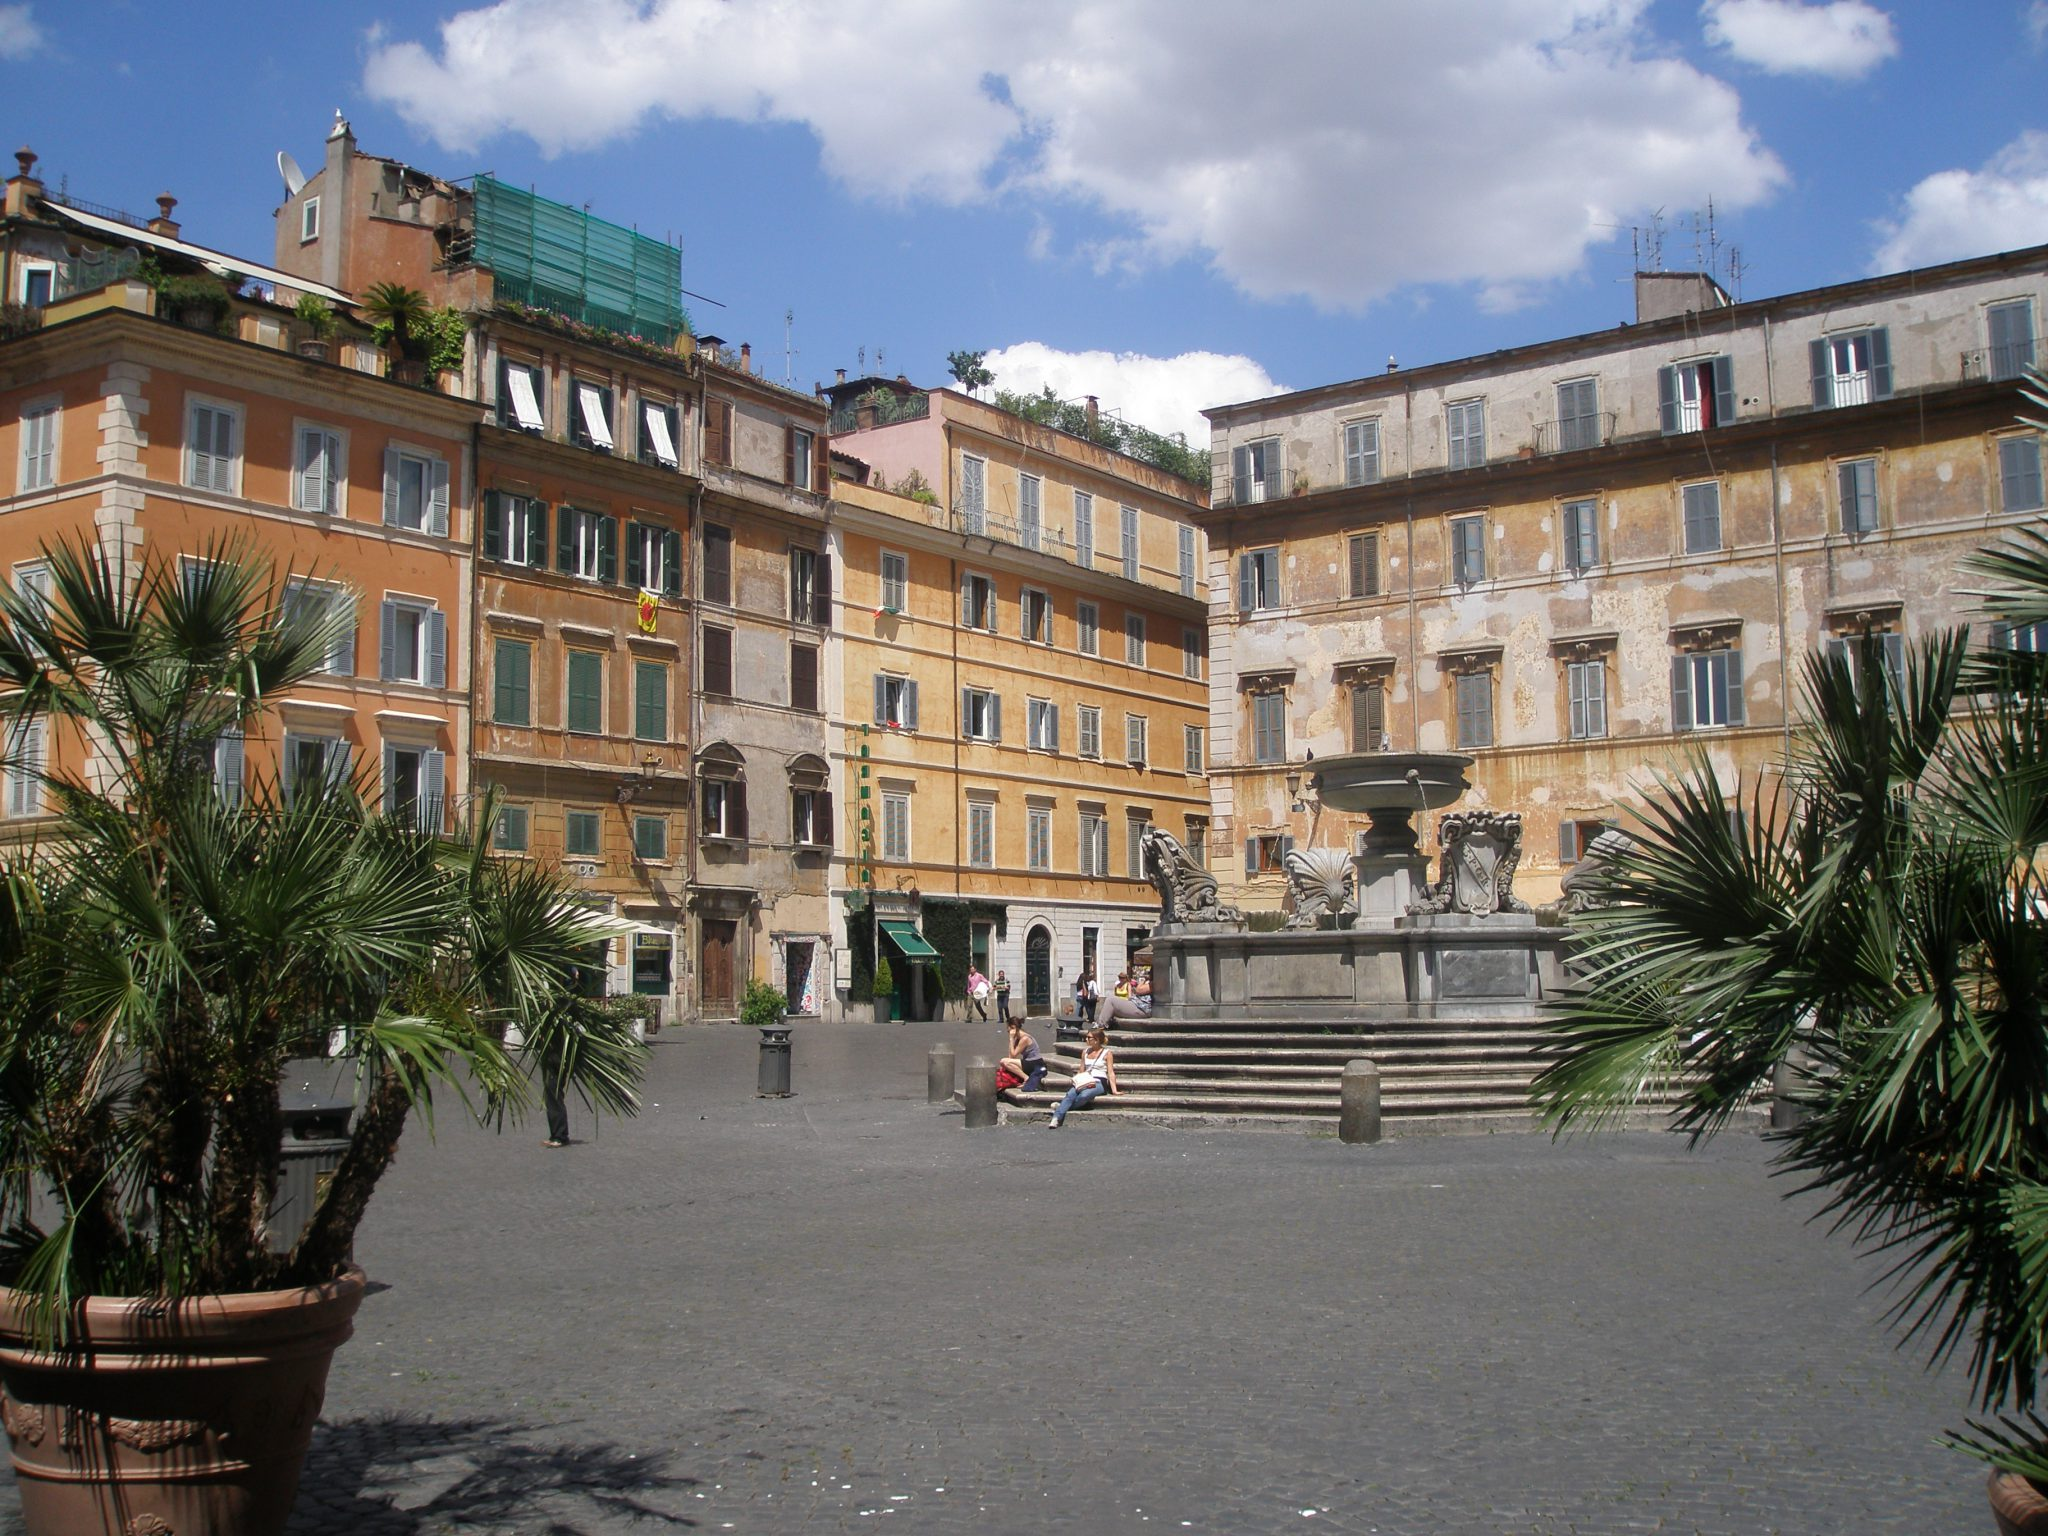 My favorite Farmacia in Trastevere is on the Piazza di Santa Maria, across from the Basilica. The entrance to the pharmacy is under the little green canopy that's in the center of this picture, to the rear of the fountain.